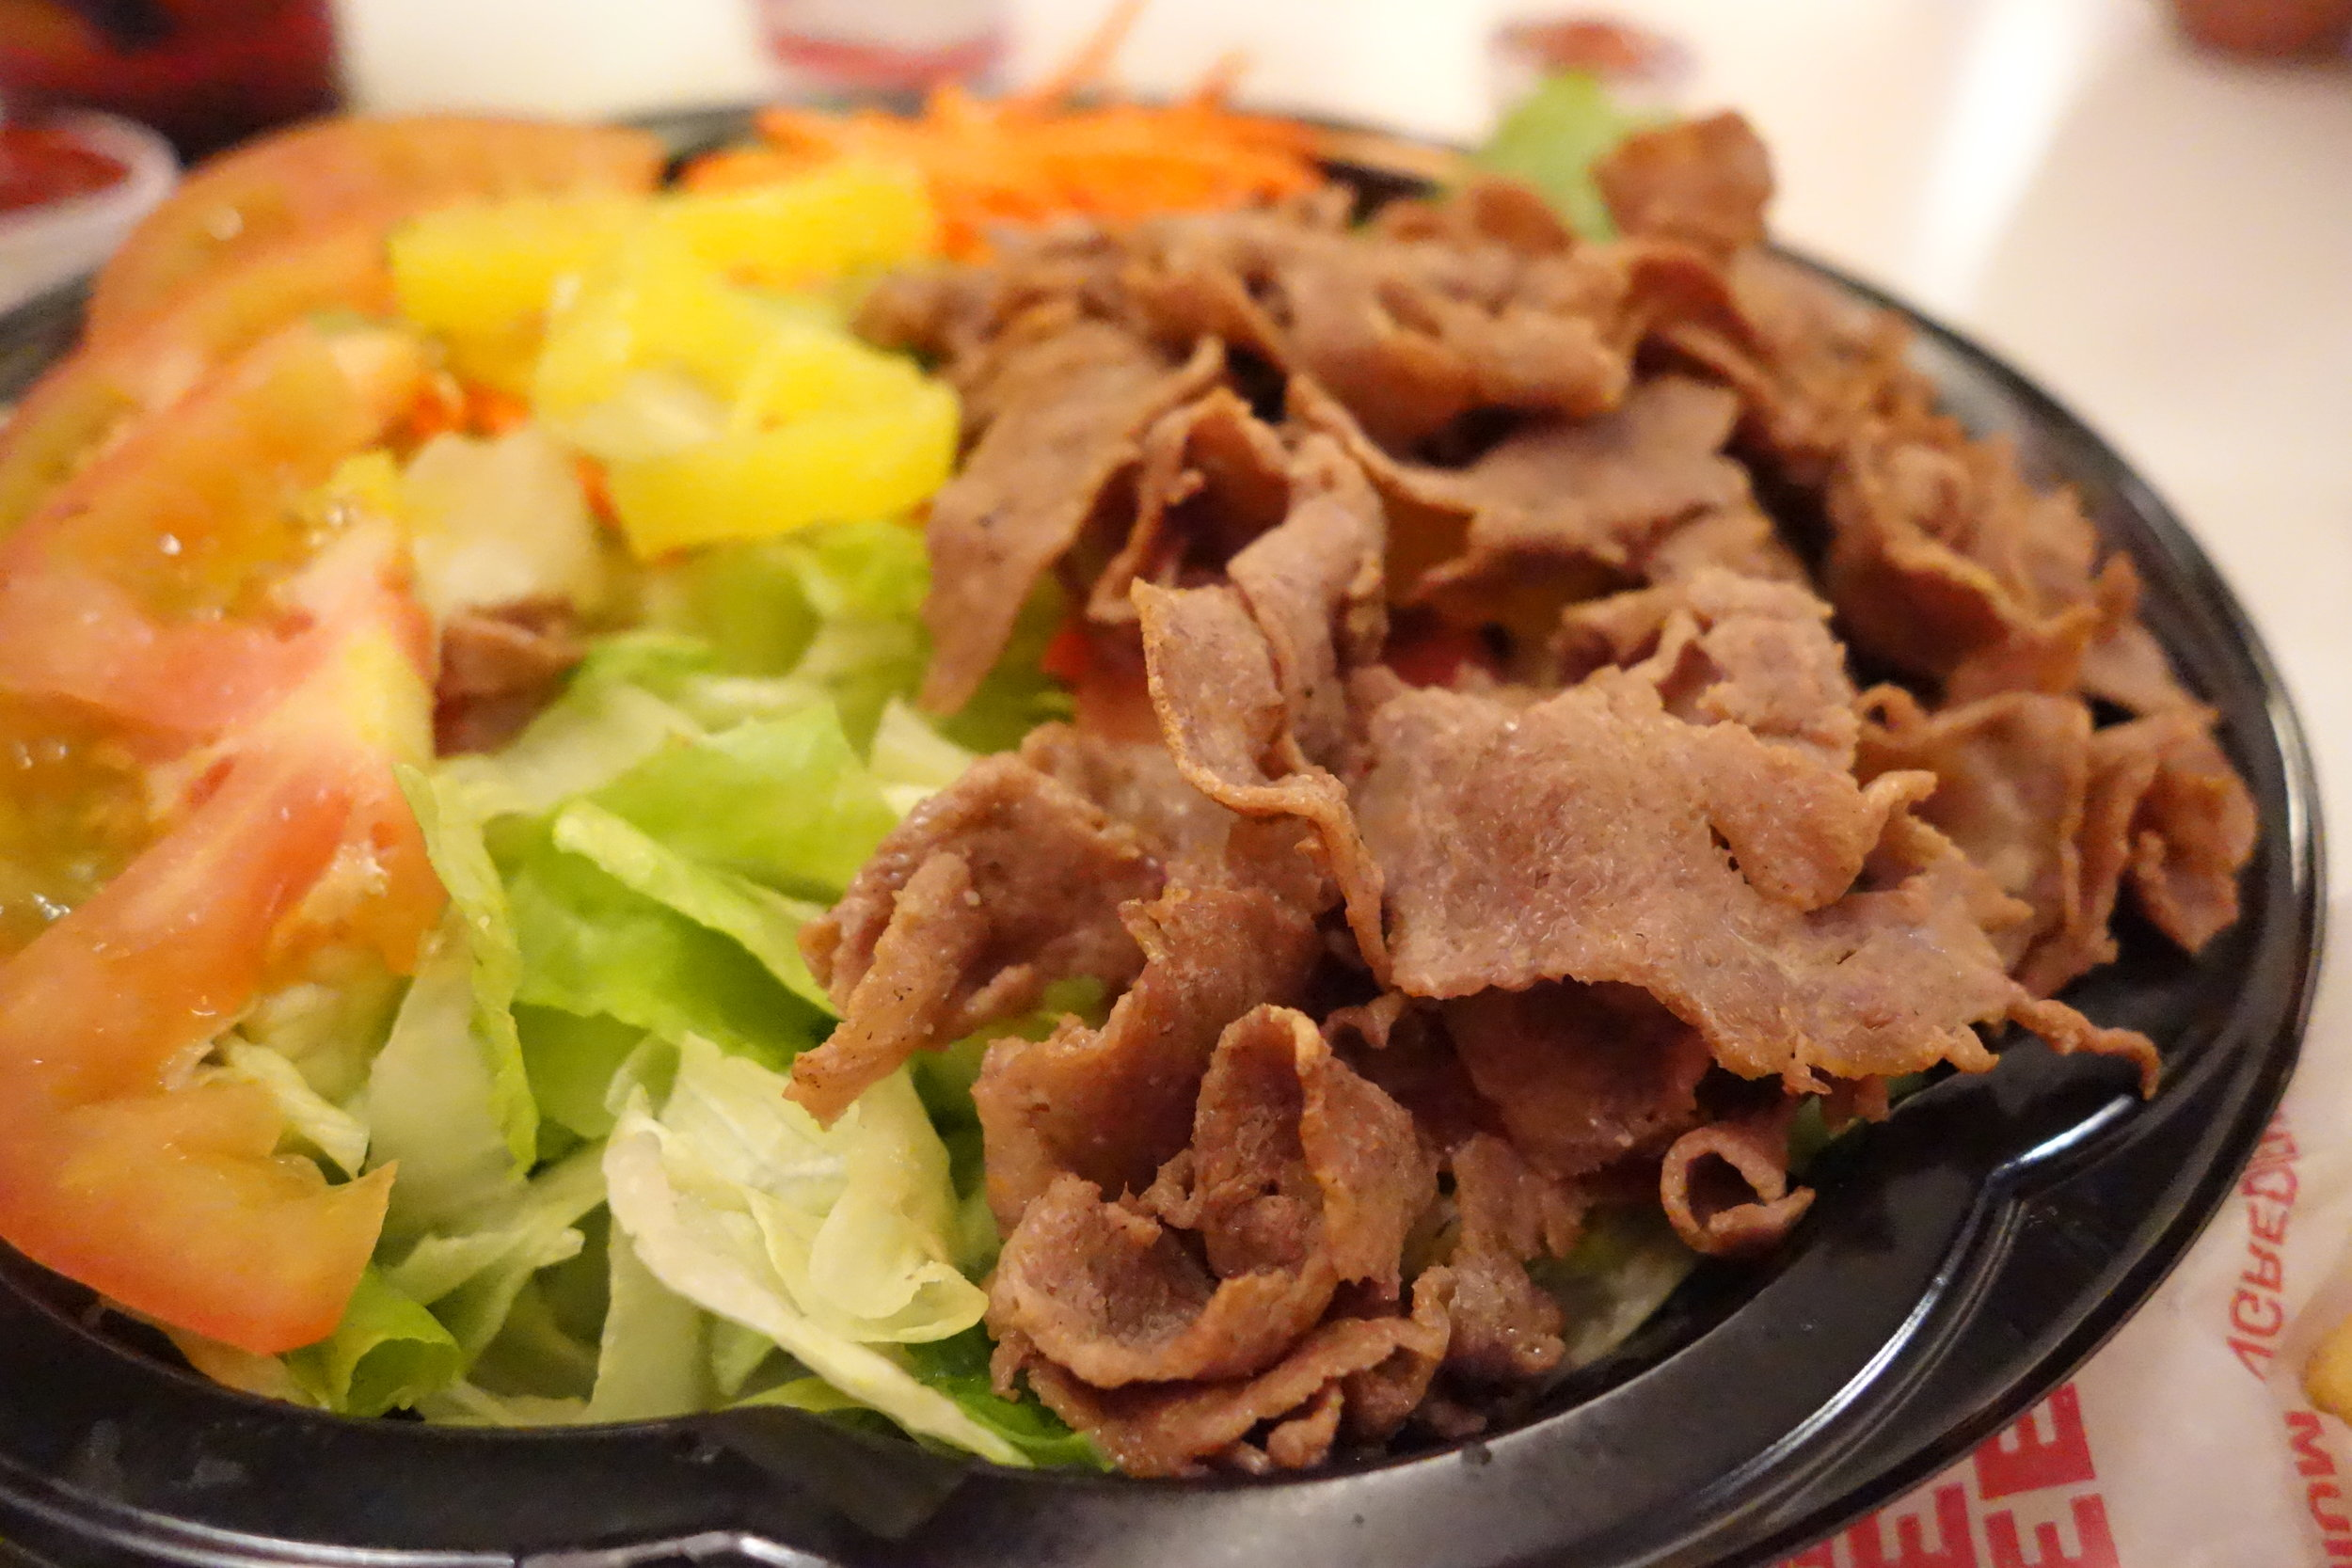 Charley's Philly Steak Salad